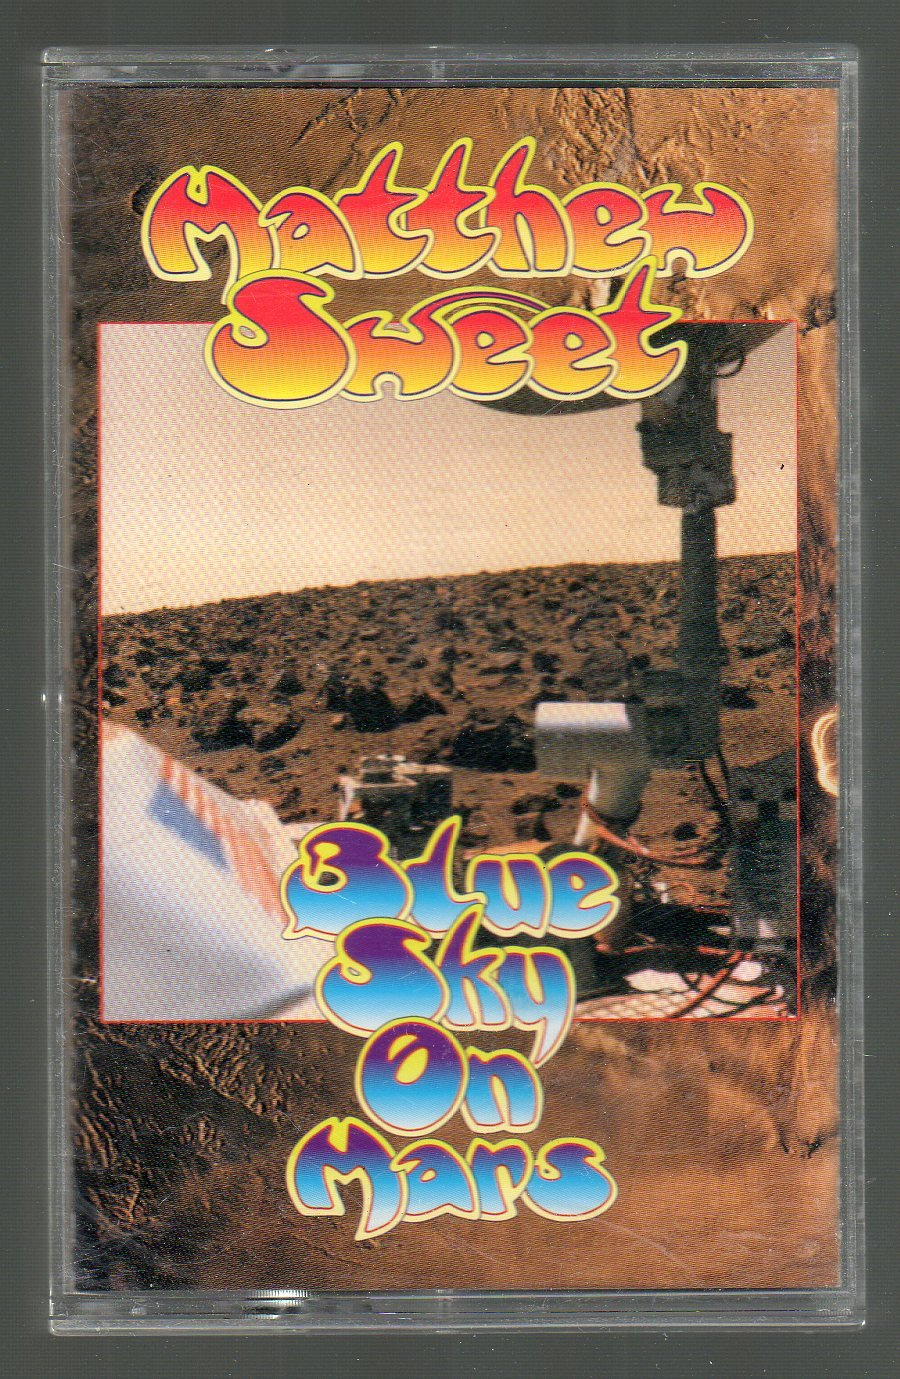 Matthew Sweet - Blue Sky On Mars Cassette Tape